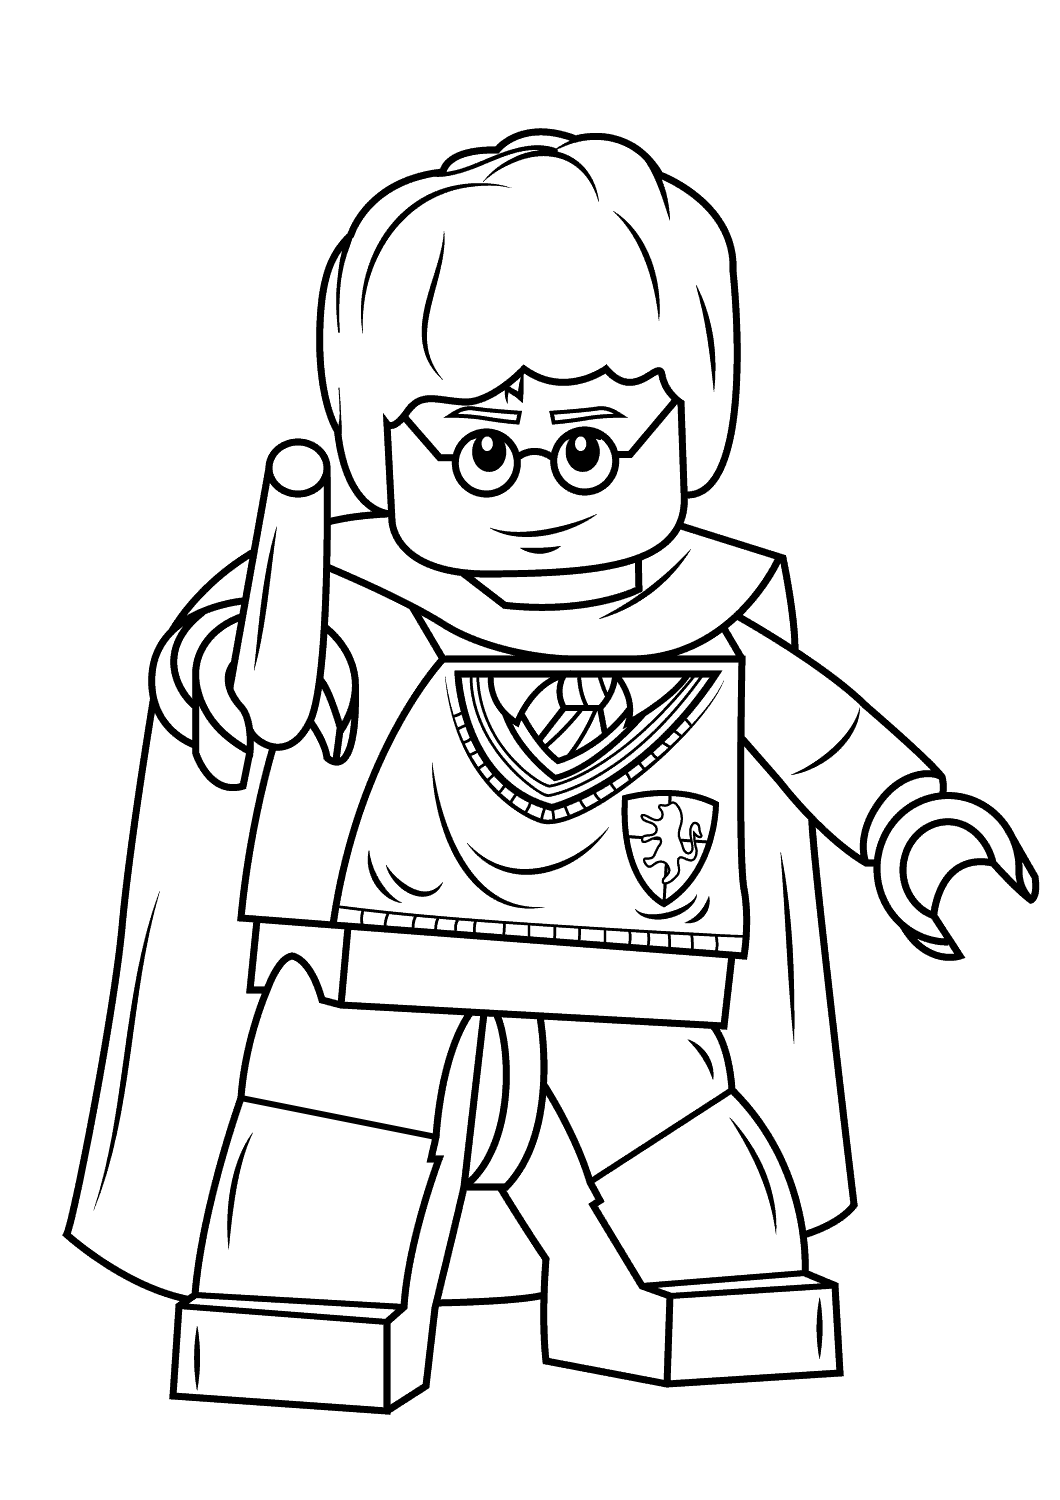 Coloriage lego harry potter imprimer sur coloriages info - Dessin lego a colorier ...